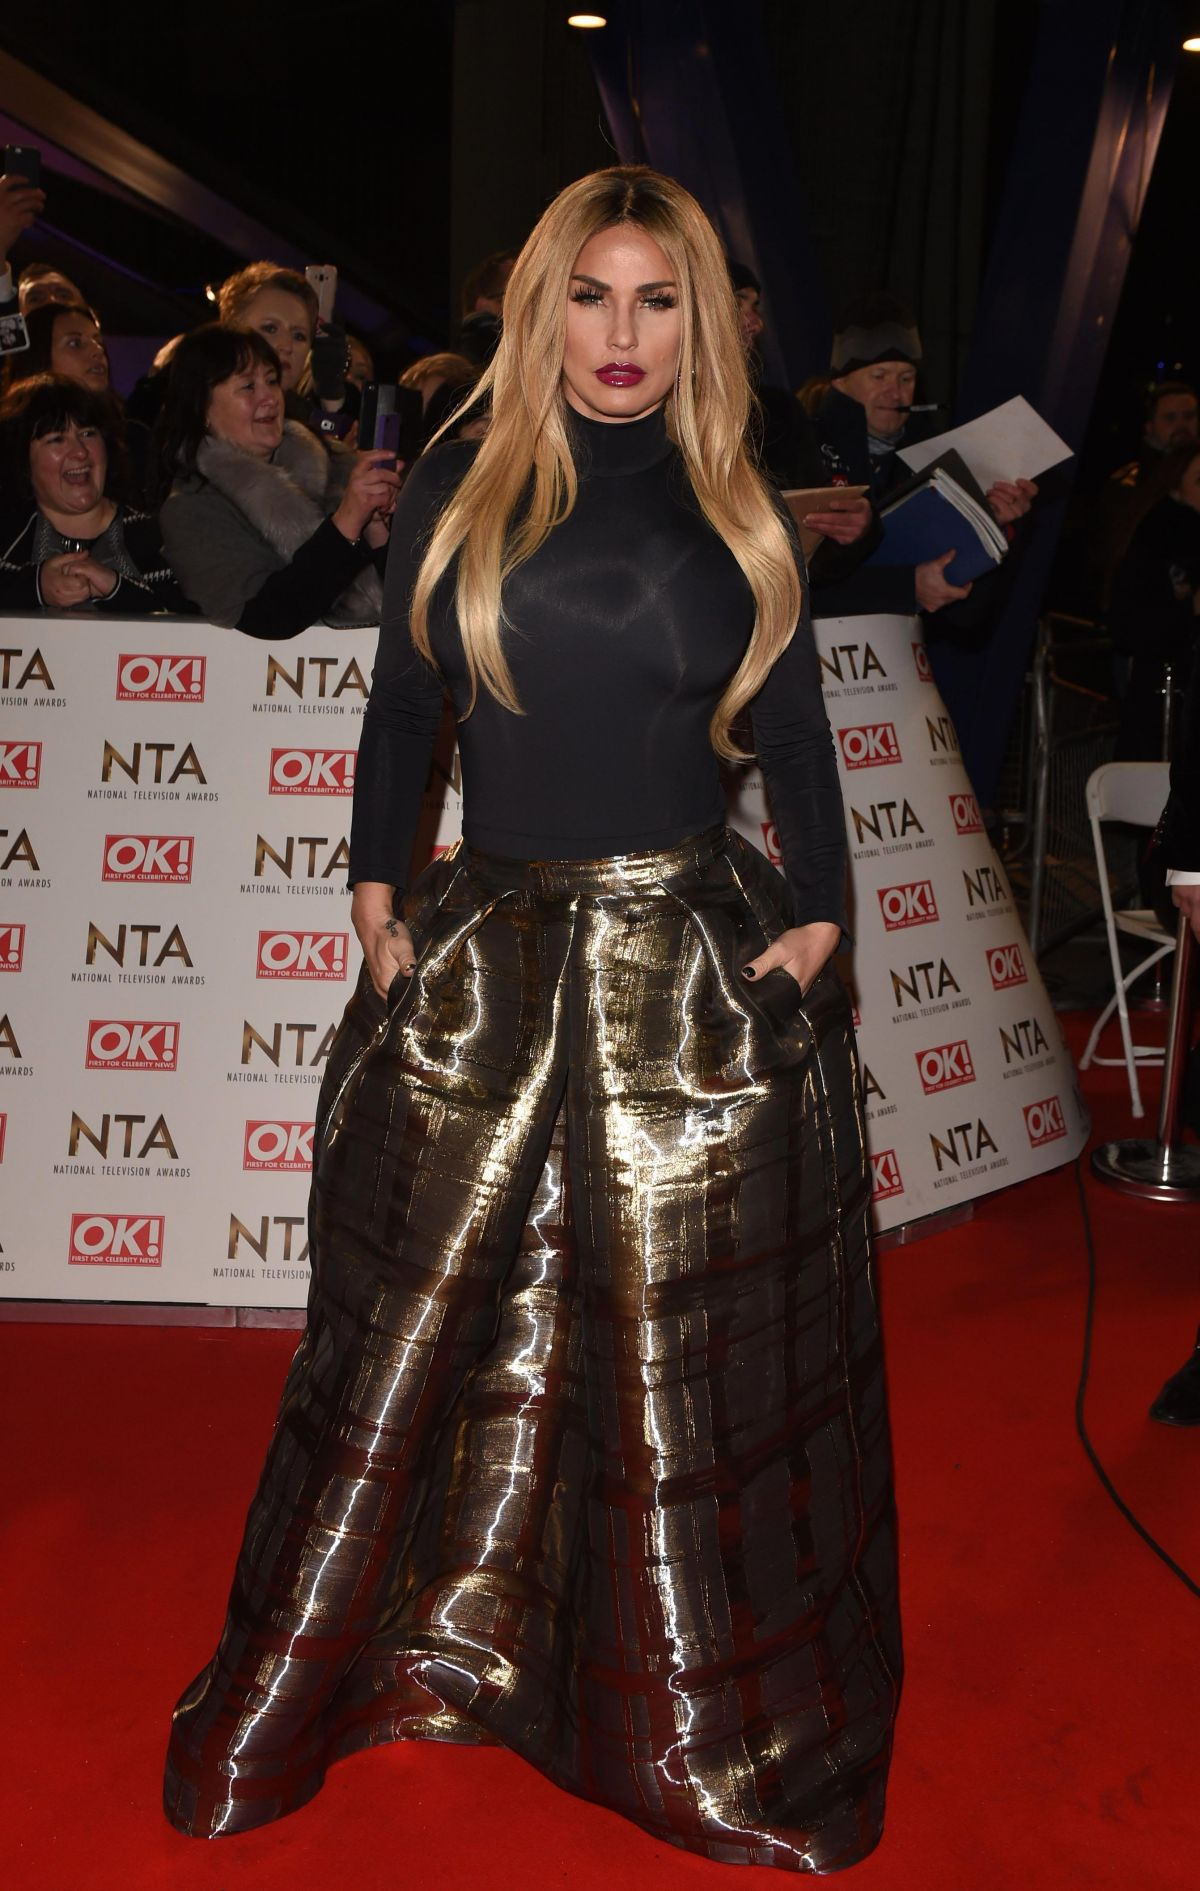 KATIE PRICE at National Television Awards in London 01/25/2017